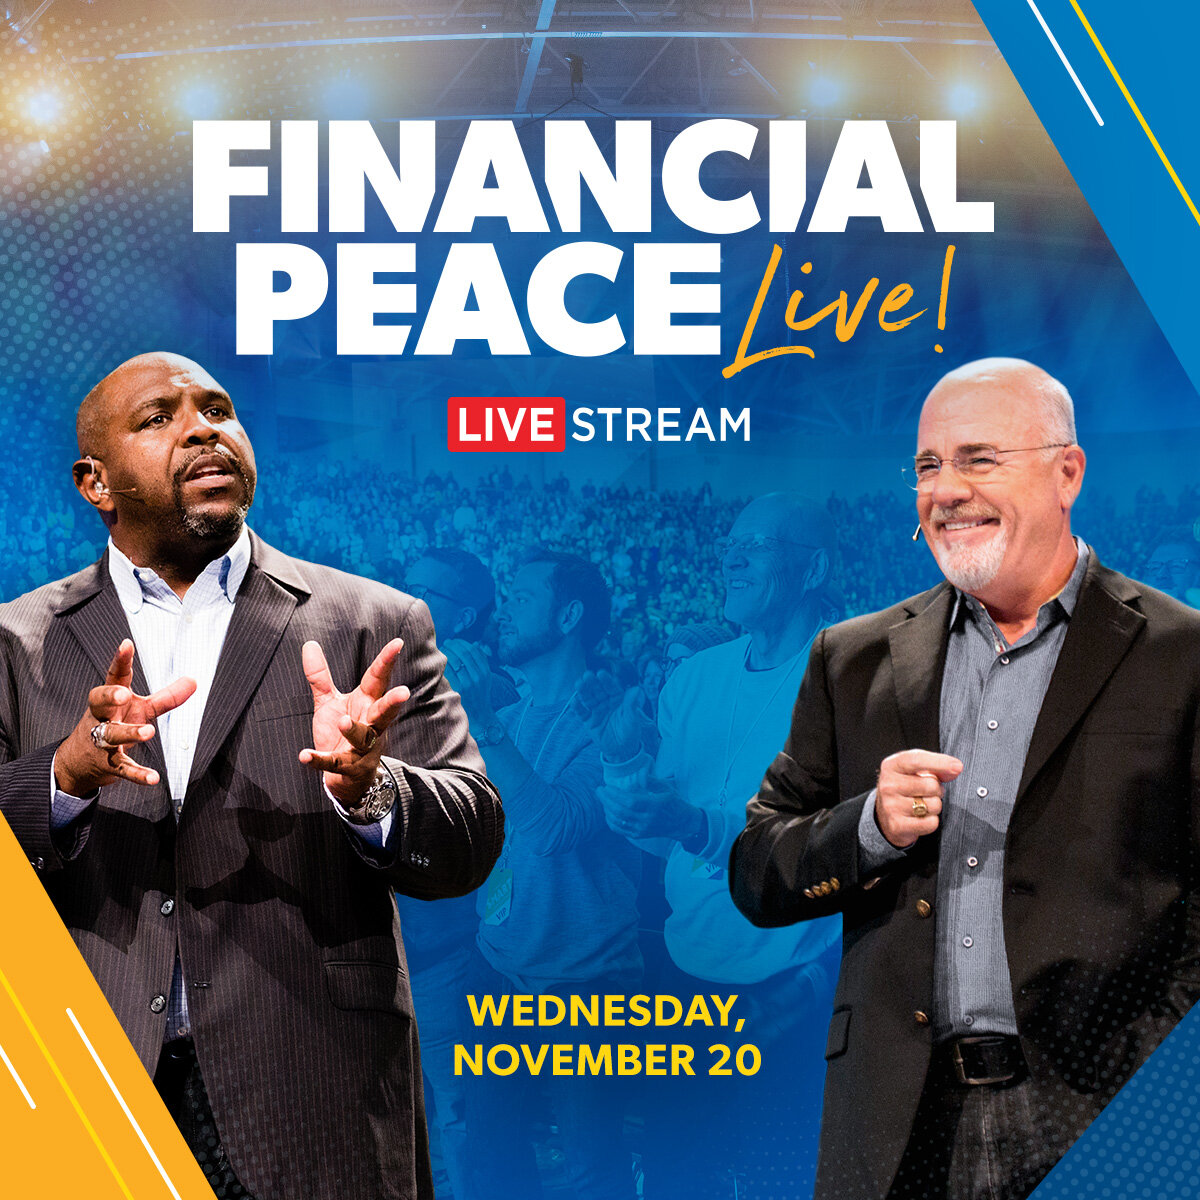 financial-peace-live-livestream-instagram.jpg